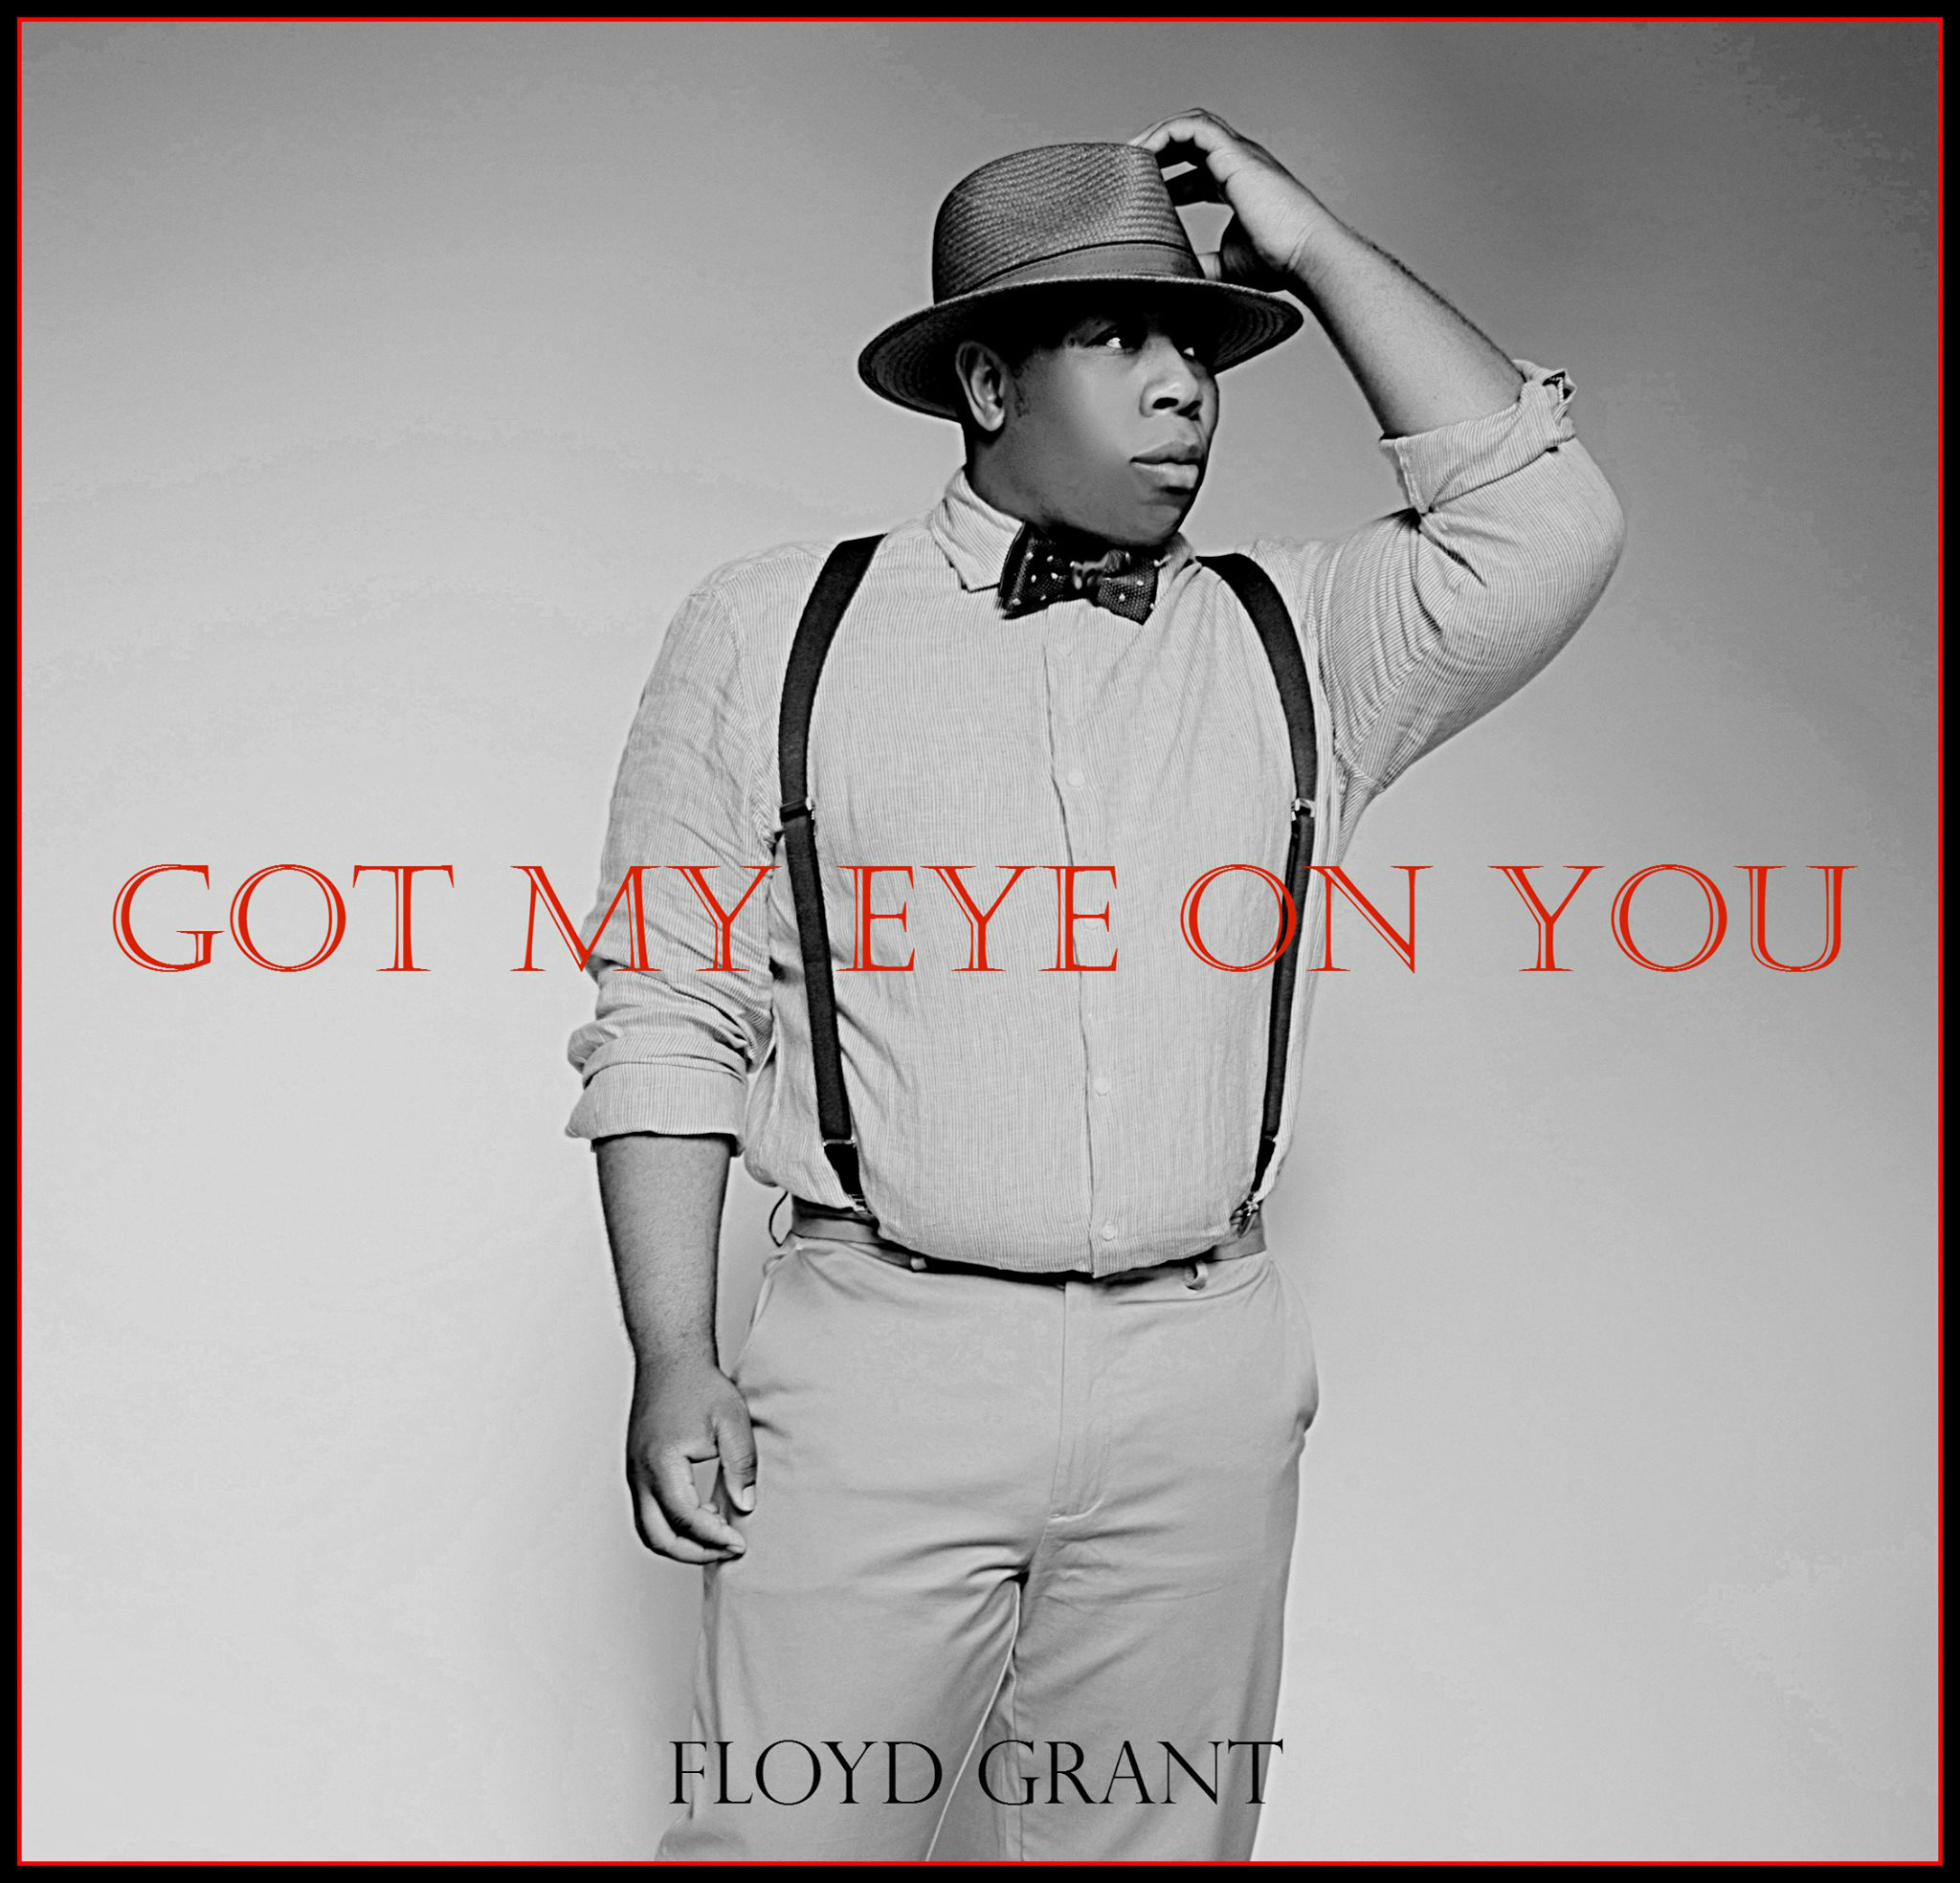 Go My Eye On You - Floyd Grant